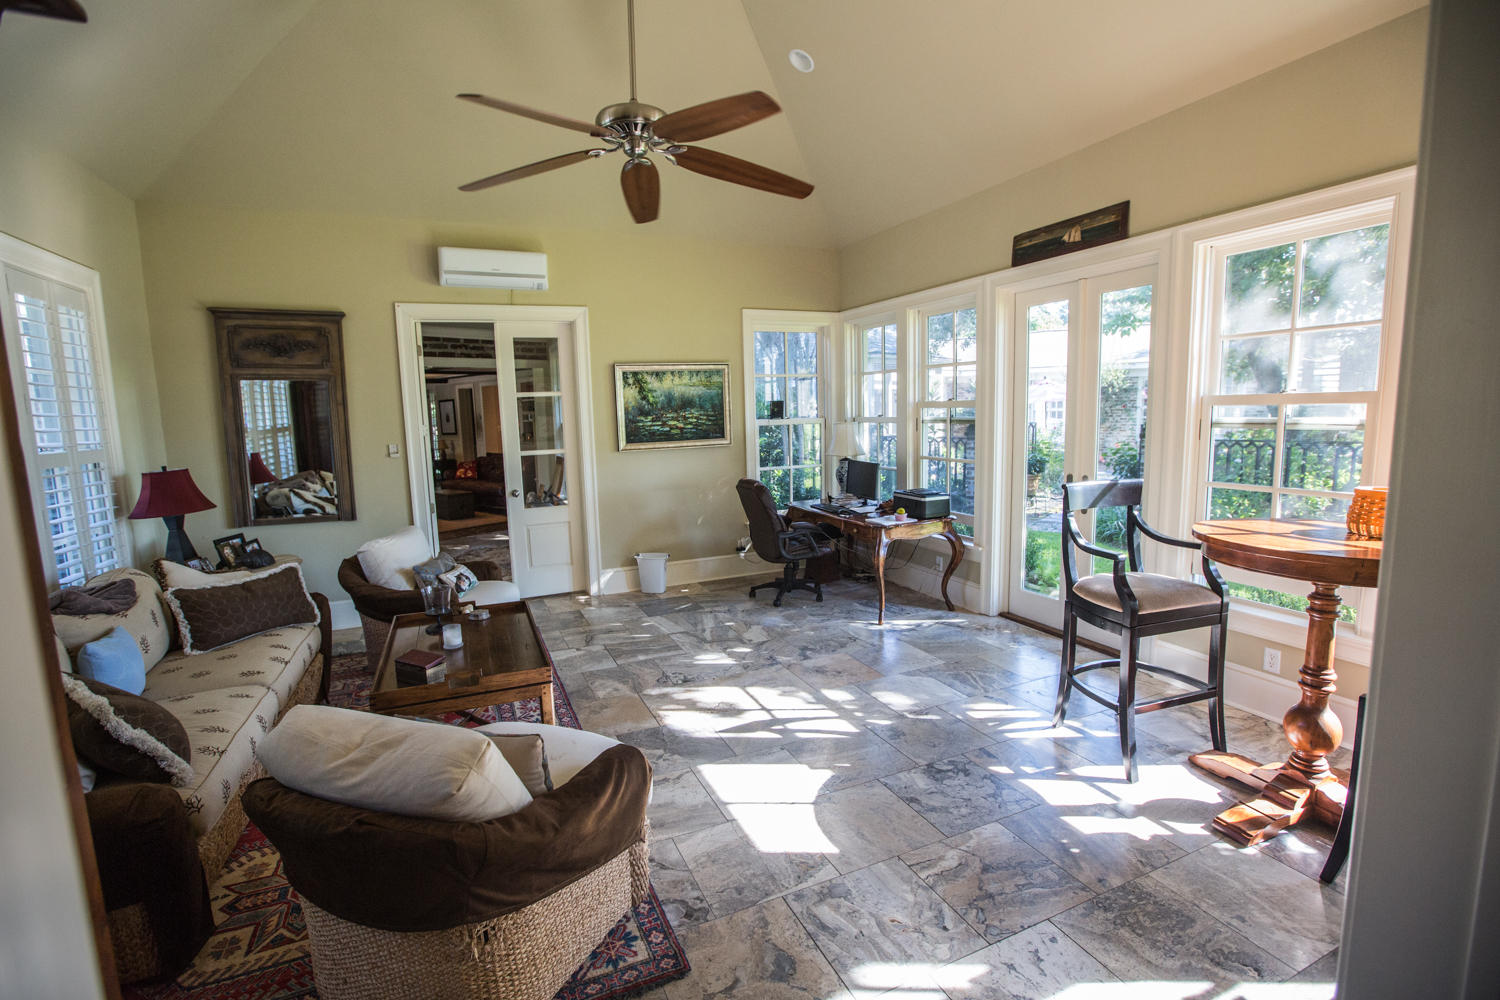 Edgewater Park Homes For Sale - 120 Edgewater, Charleston, SC - 27